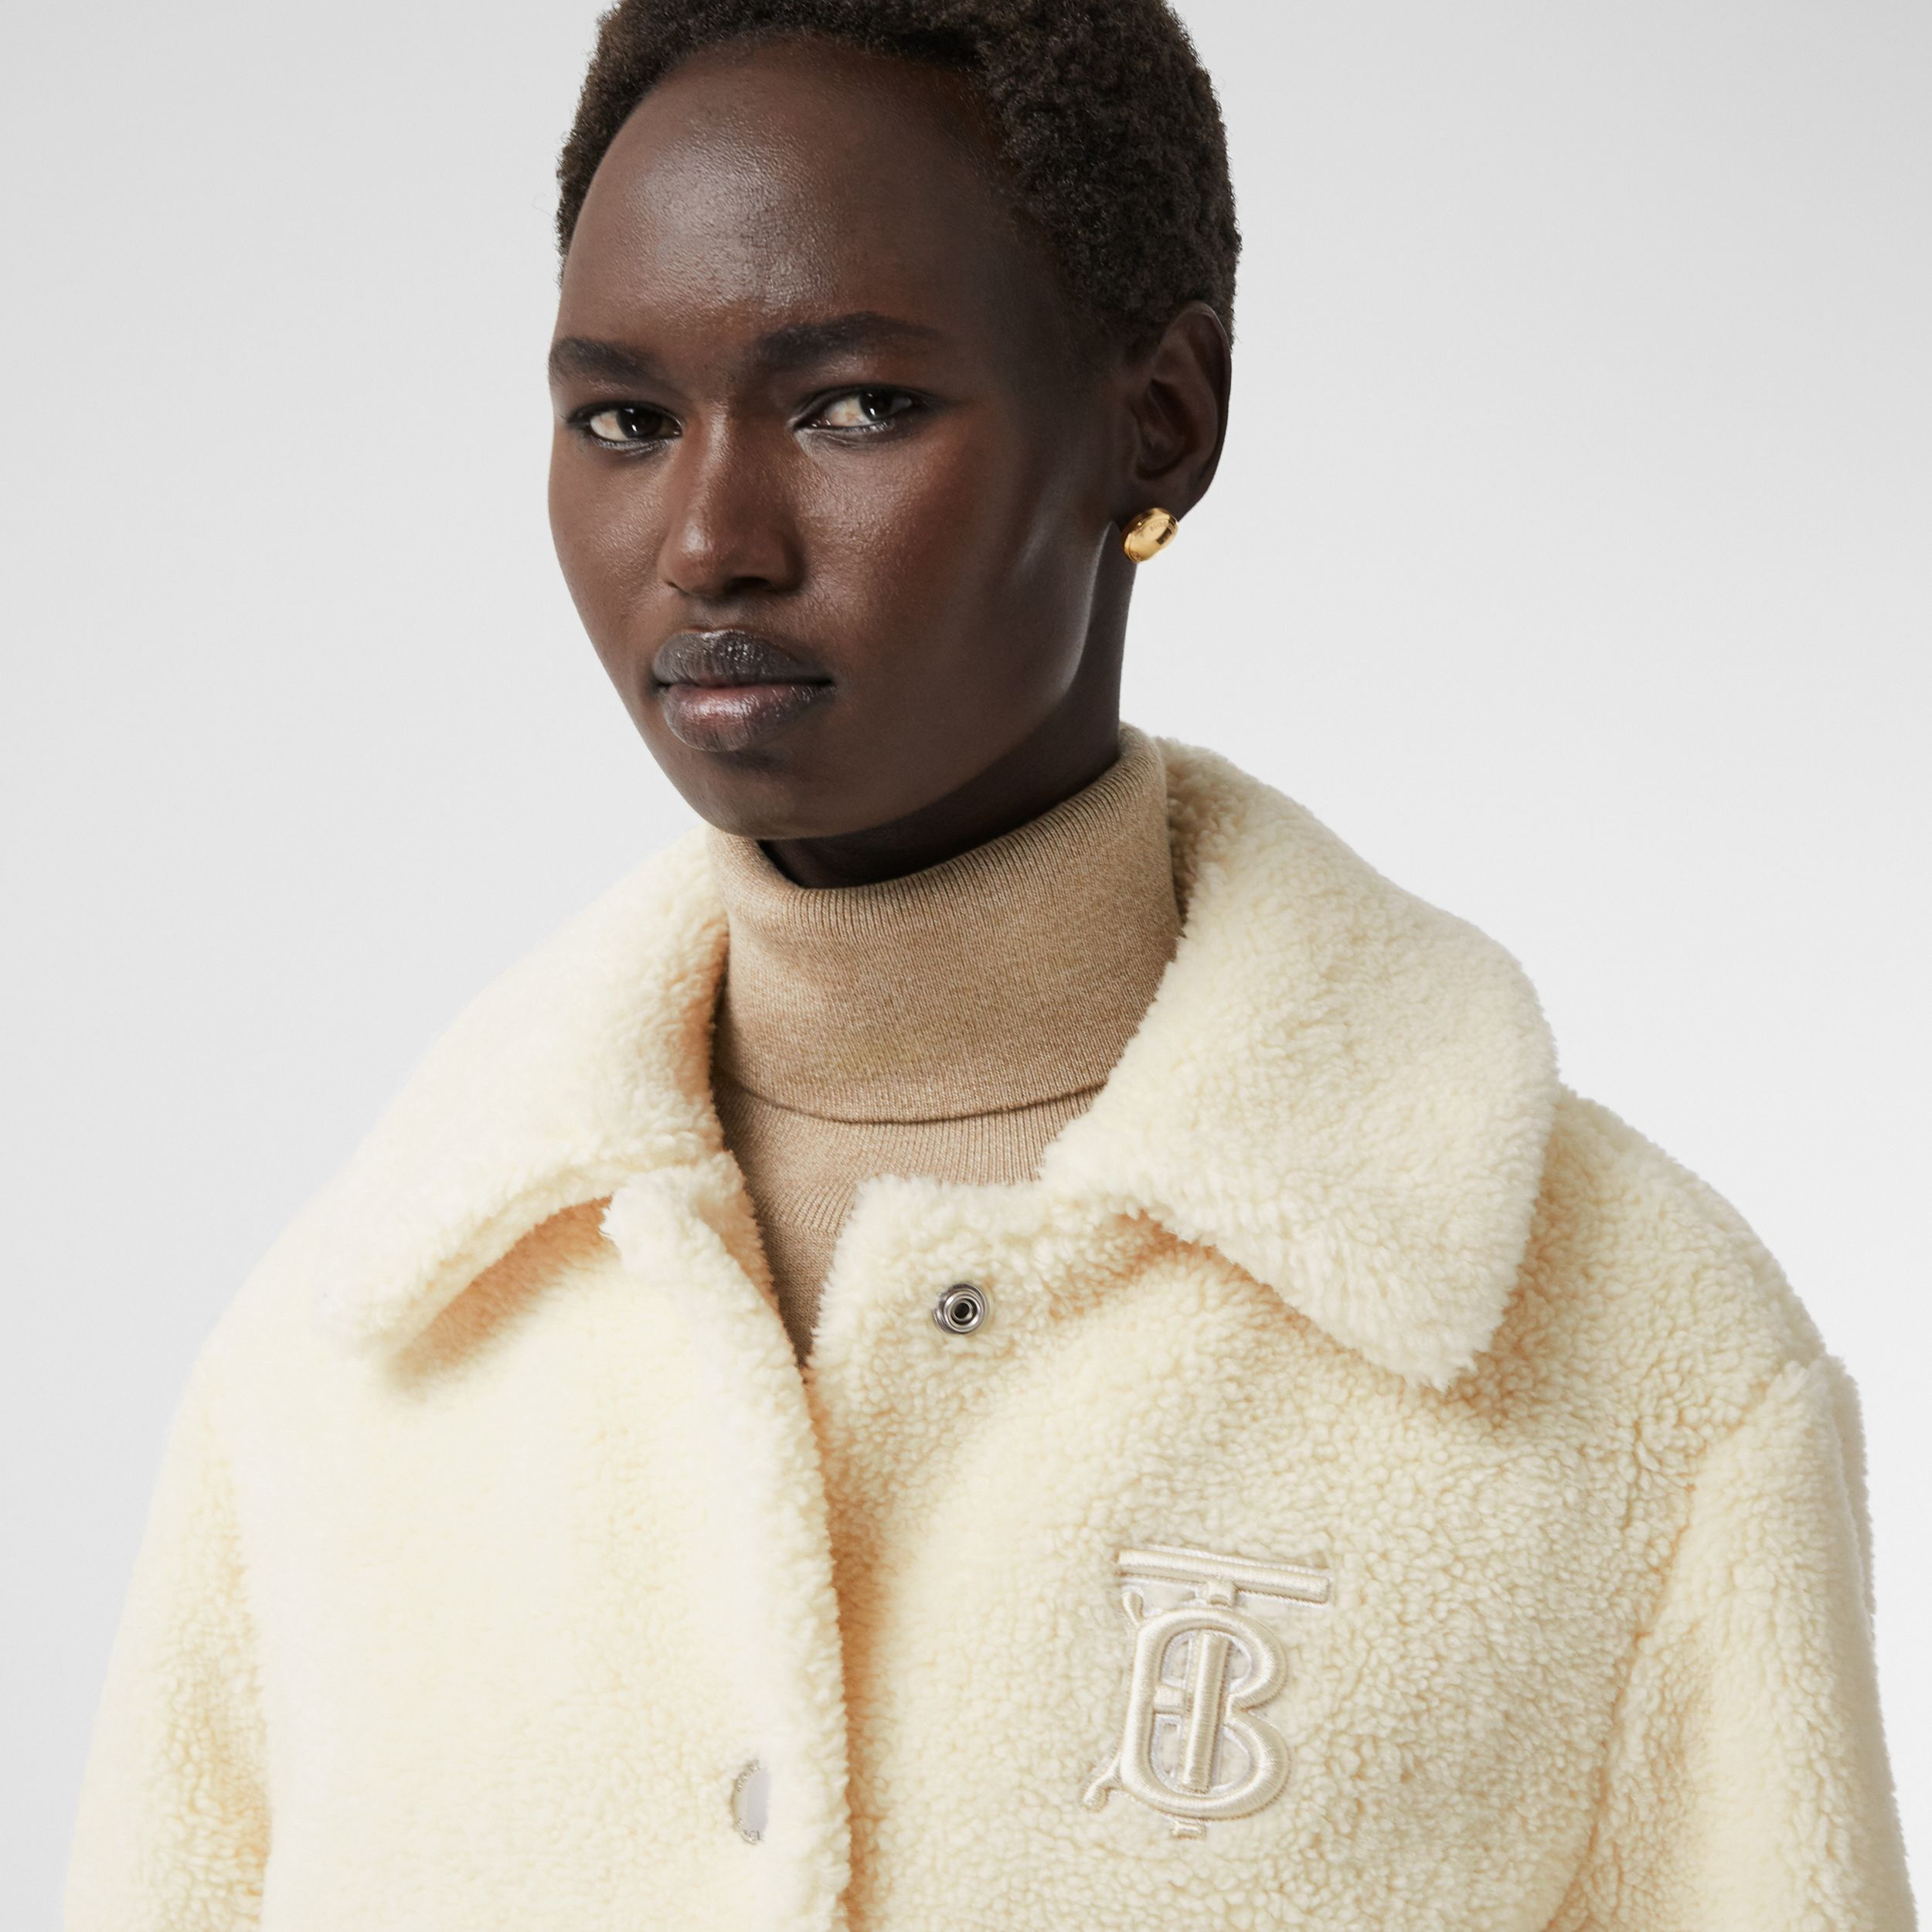 Monogram Motif Fleece Jacket in Ivory - Women | Burberry Hong Kong S.A.R. - 1